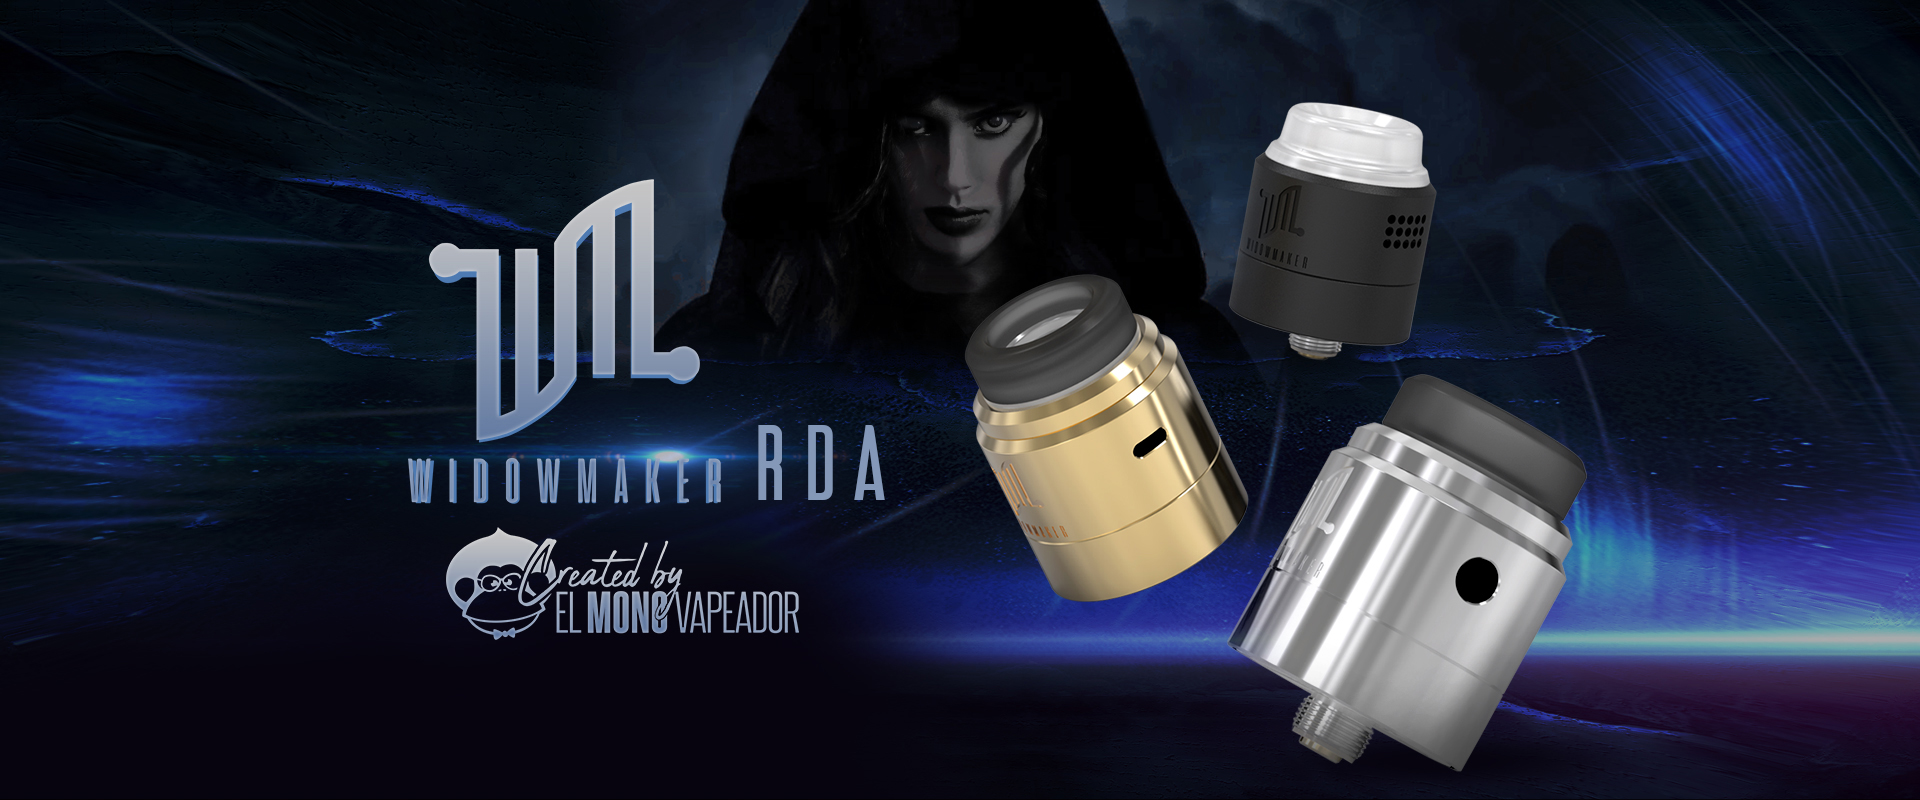 Vandy Vape Widowmaker RDA Feature 06